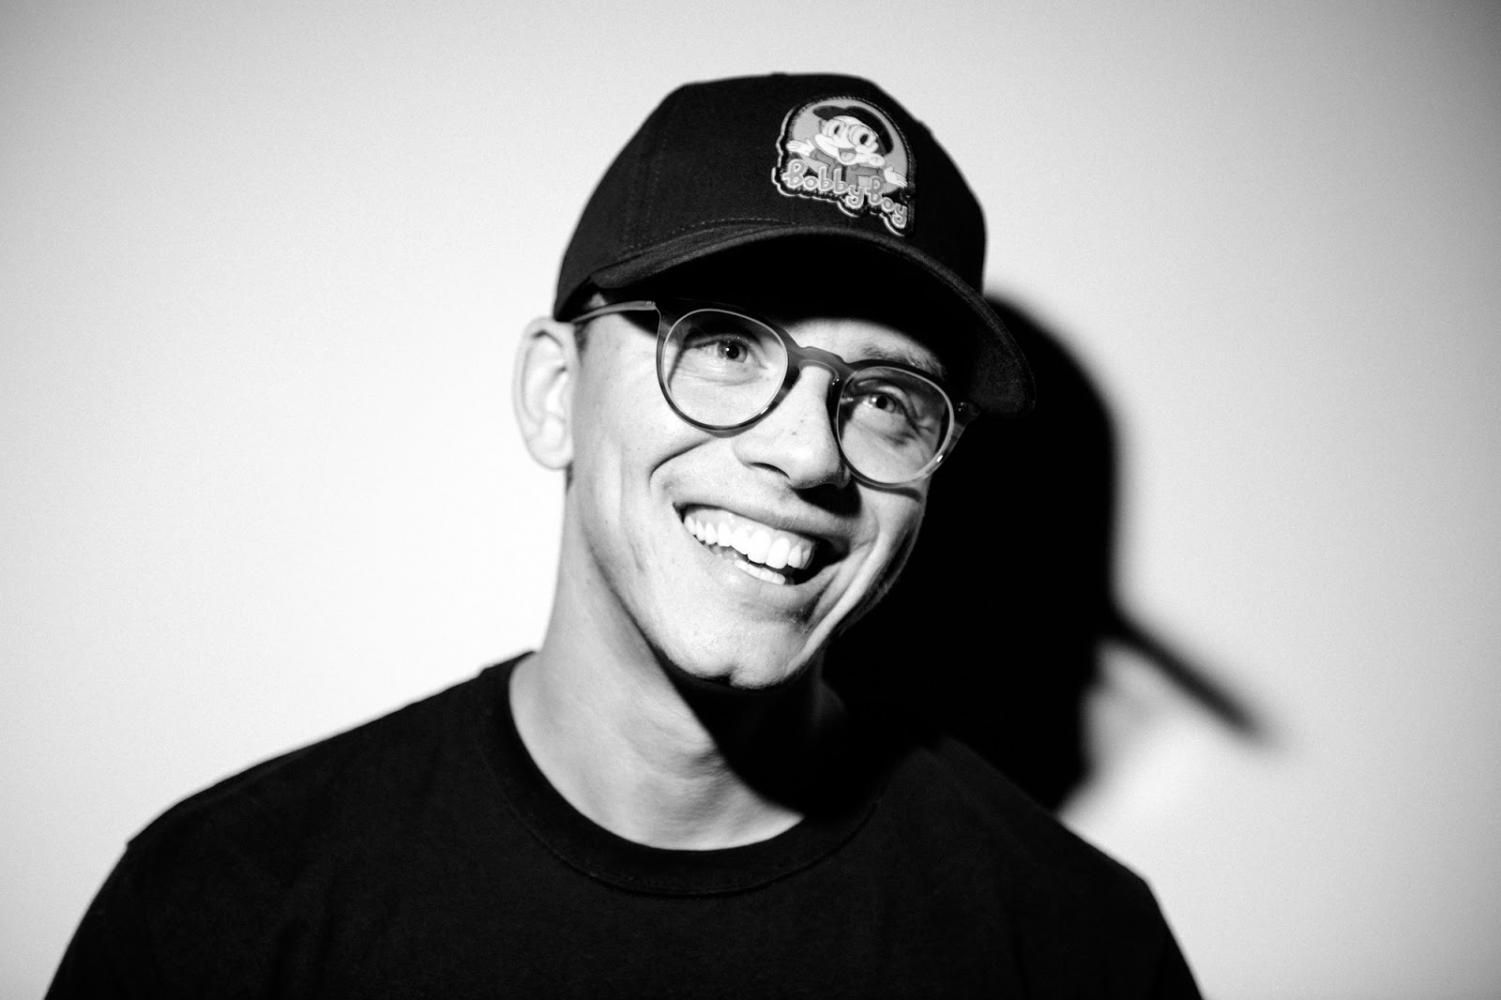 Picture of rapper Logic. Photo Courtesy of rollingstone.com